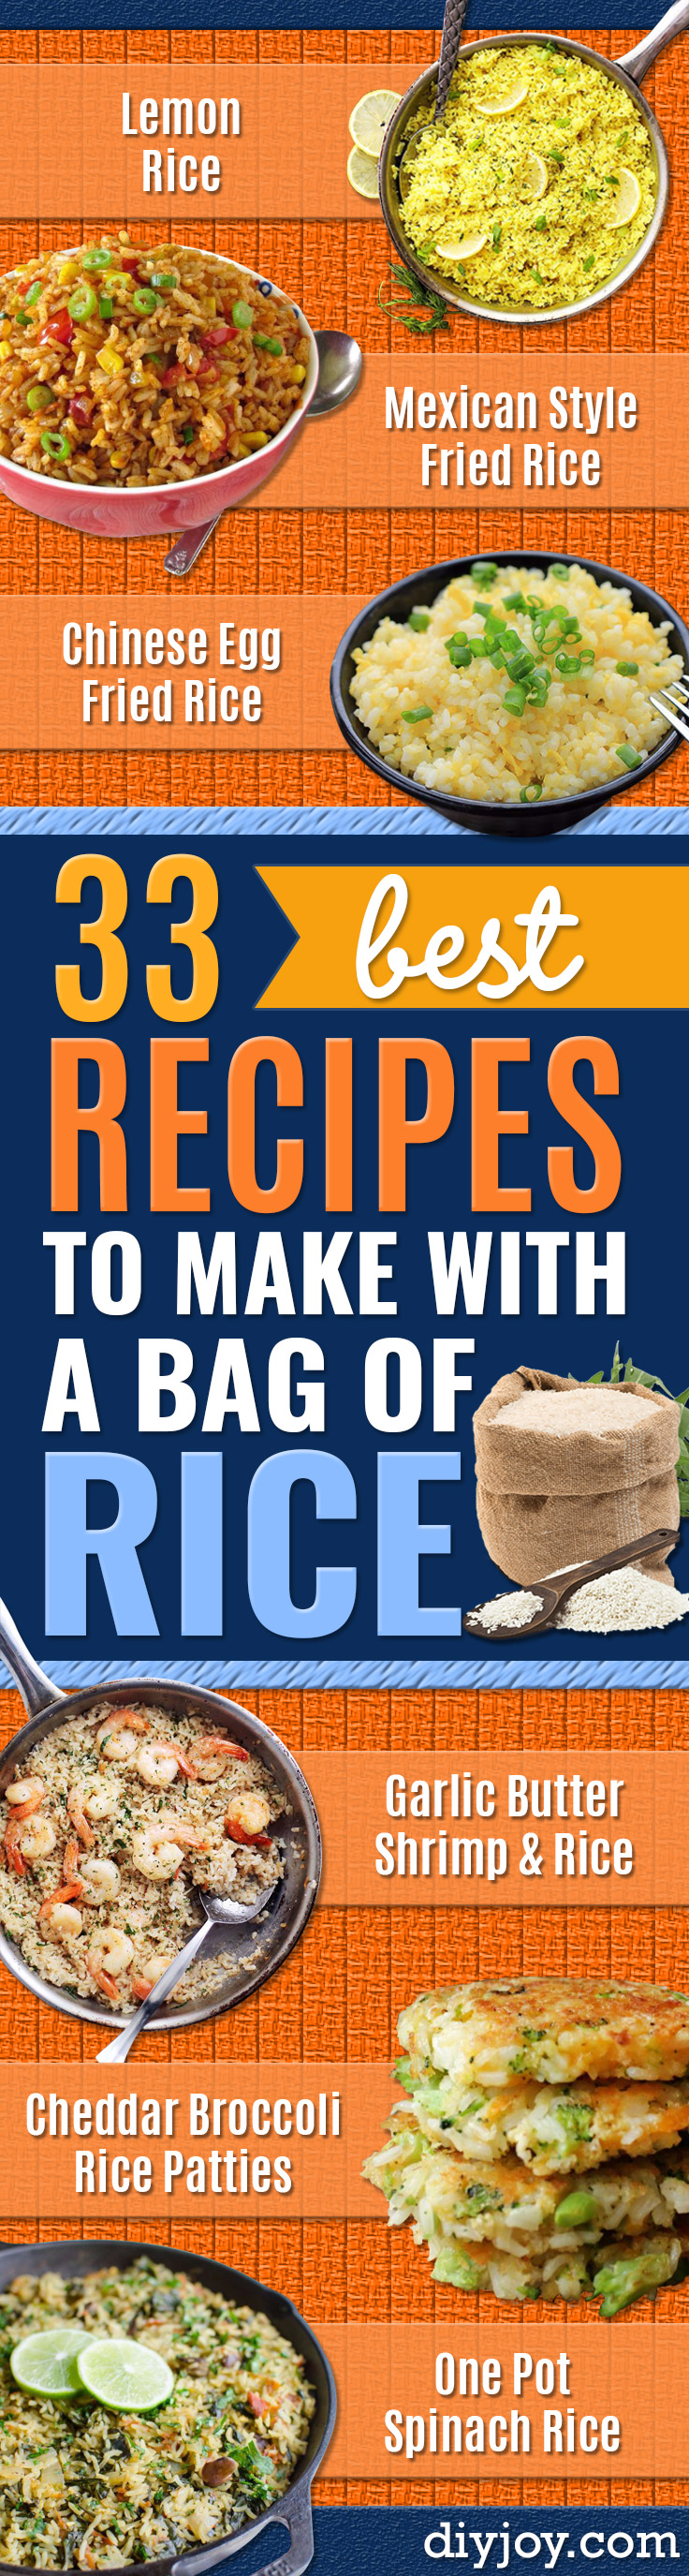 Best Rice Recipes - Easy Ideas for Quick Meals Made From a Bag of Rice - Healthy Recipes With Brown, White and Arborio Rice - Cheesy, Fried, Asian, Mexican Flavored Dinner Dishes and Side Dishes - DIY Projects and Crafts by DIY JOY http://diyjoy.com/best-rice-recipes